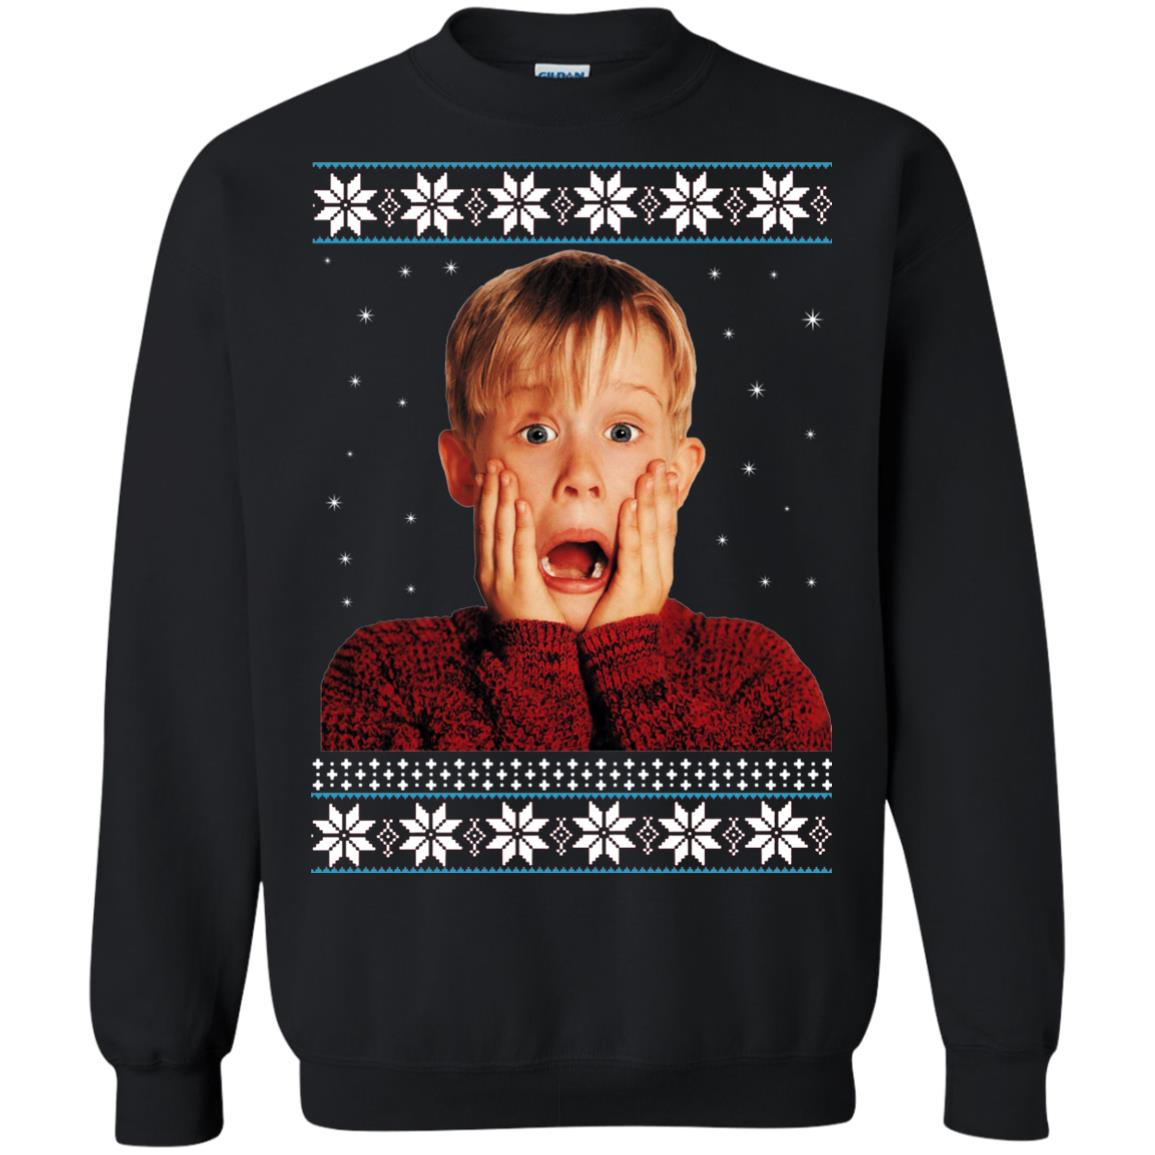 image 6276 - Home Alone: Kevin McCallister Sweatshirt, Hoodie, Long Sleeve